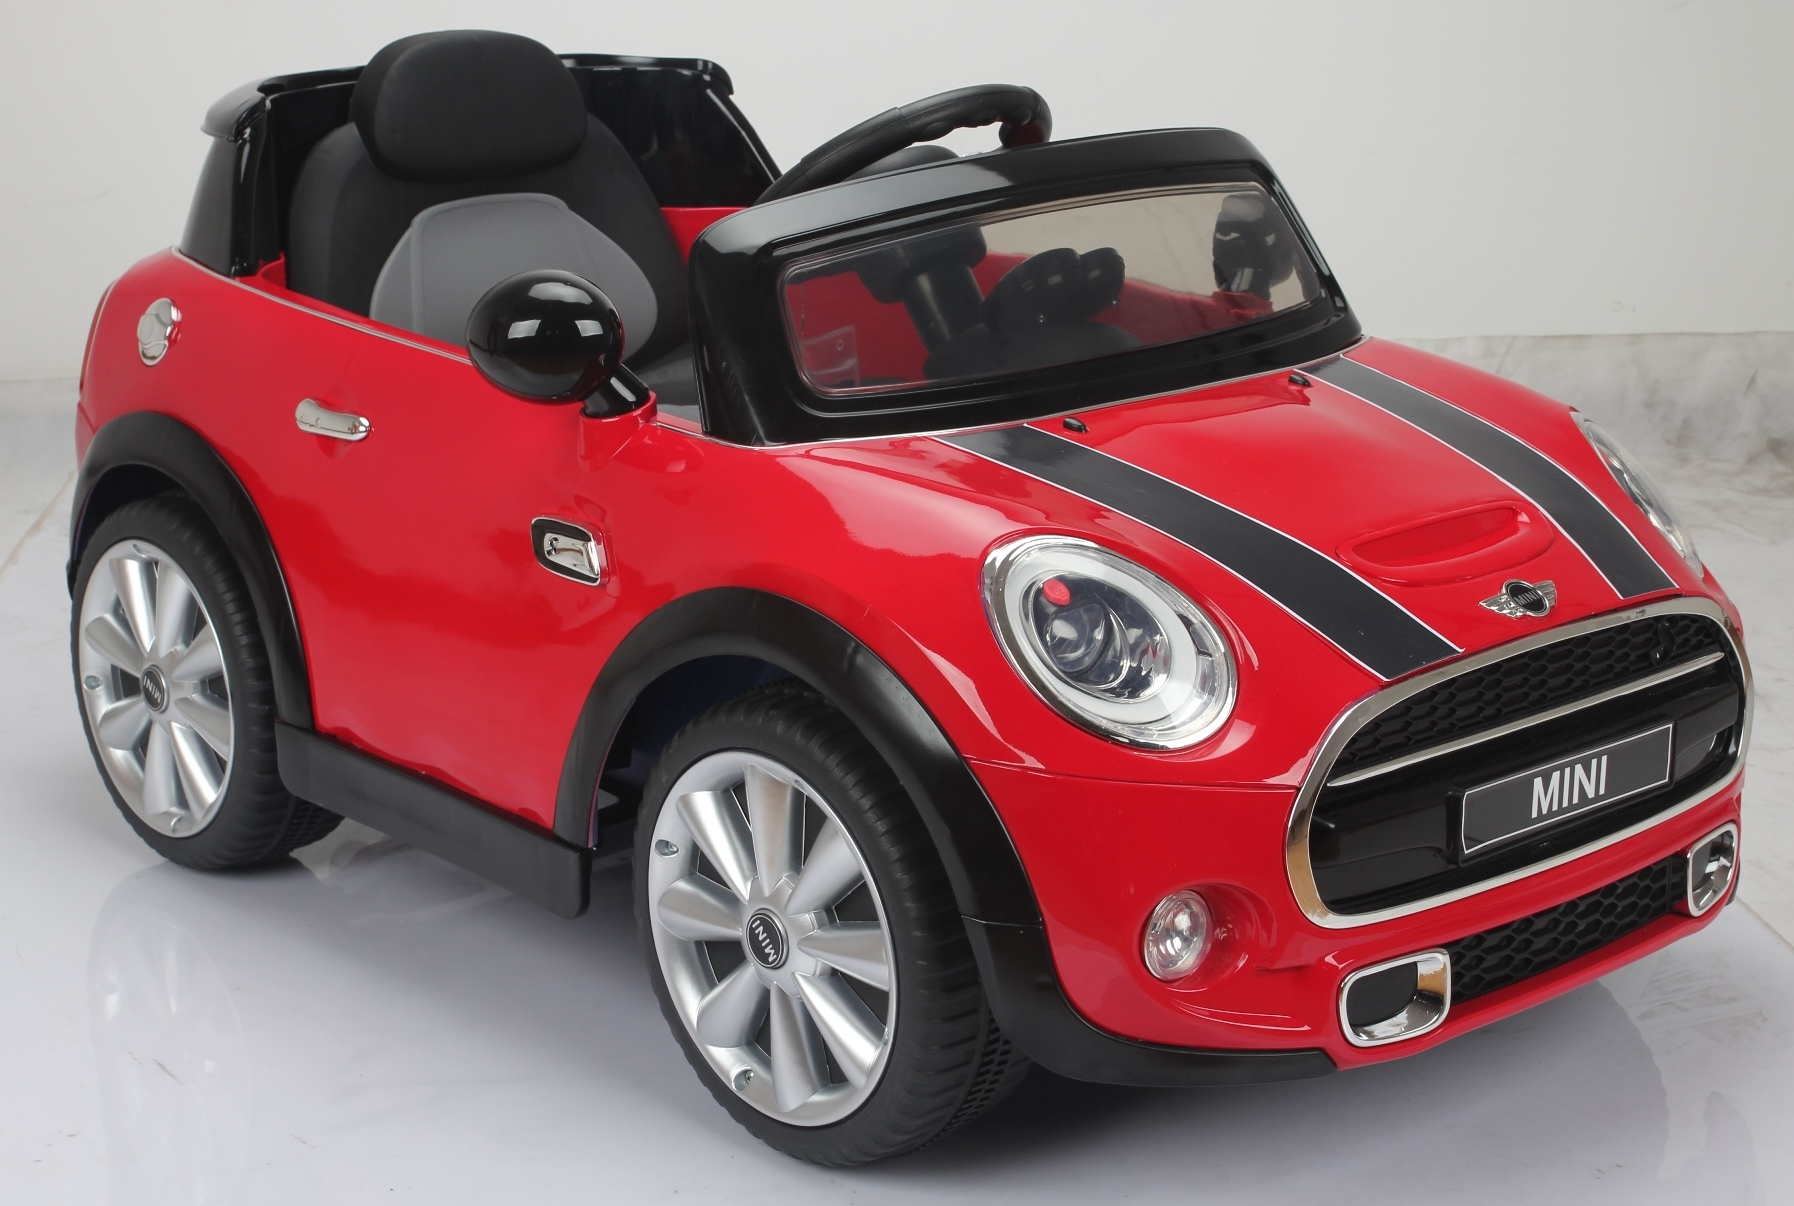 12v mini cooper s kinder elektro auto rot kinderauto. Black Bedroom Furniture Sets. Home Design Ideas